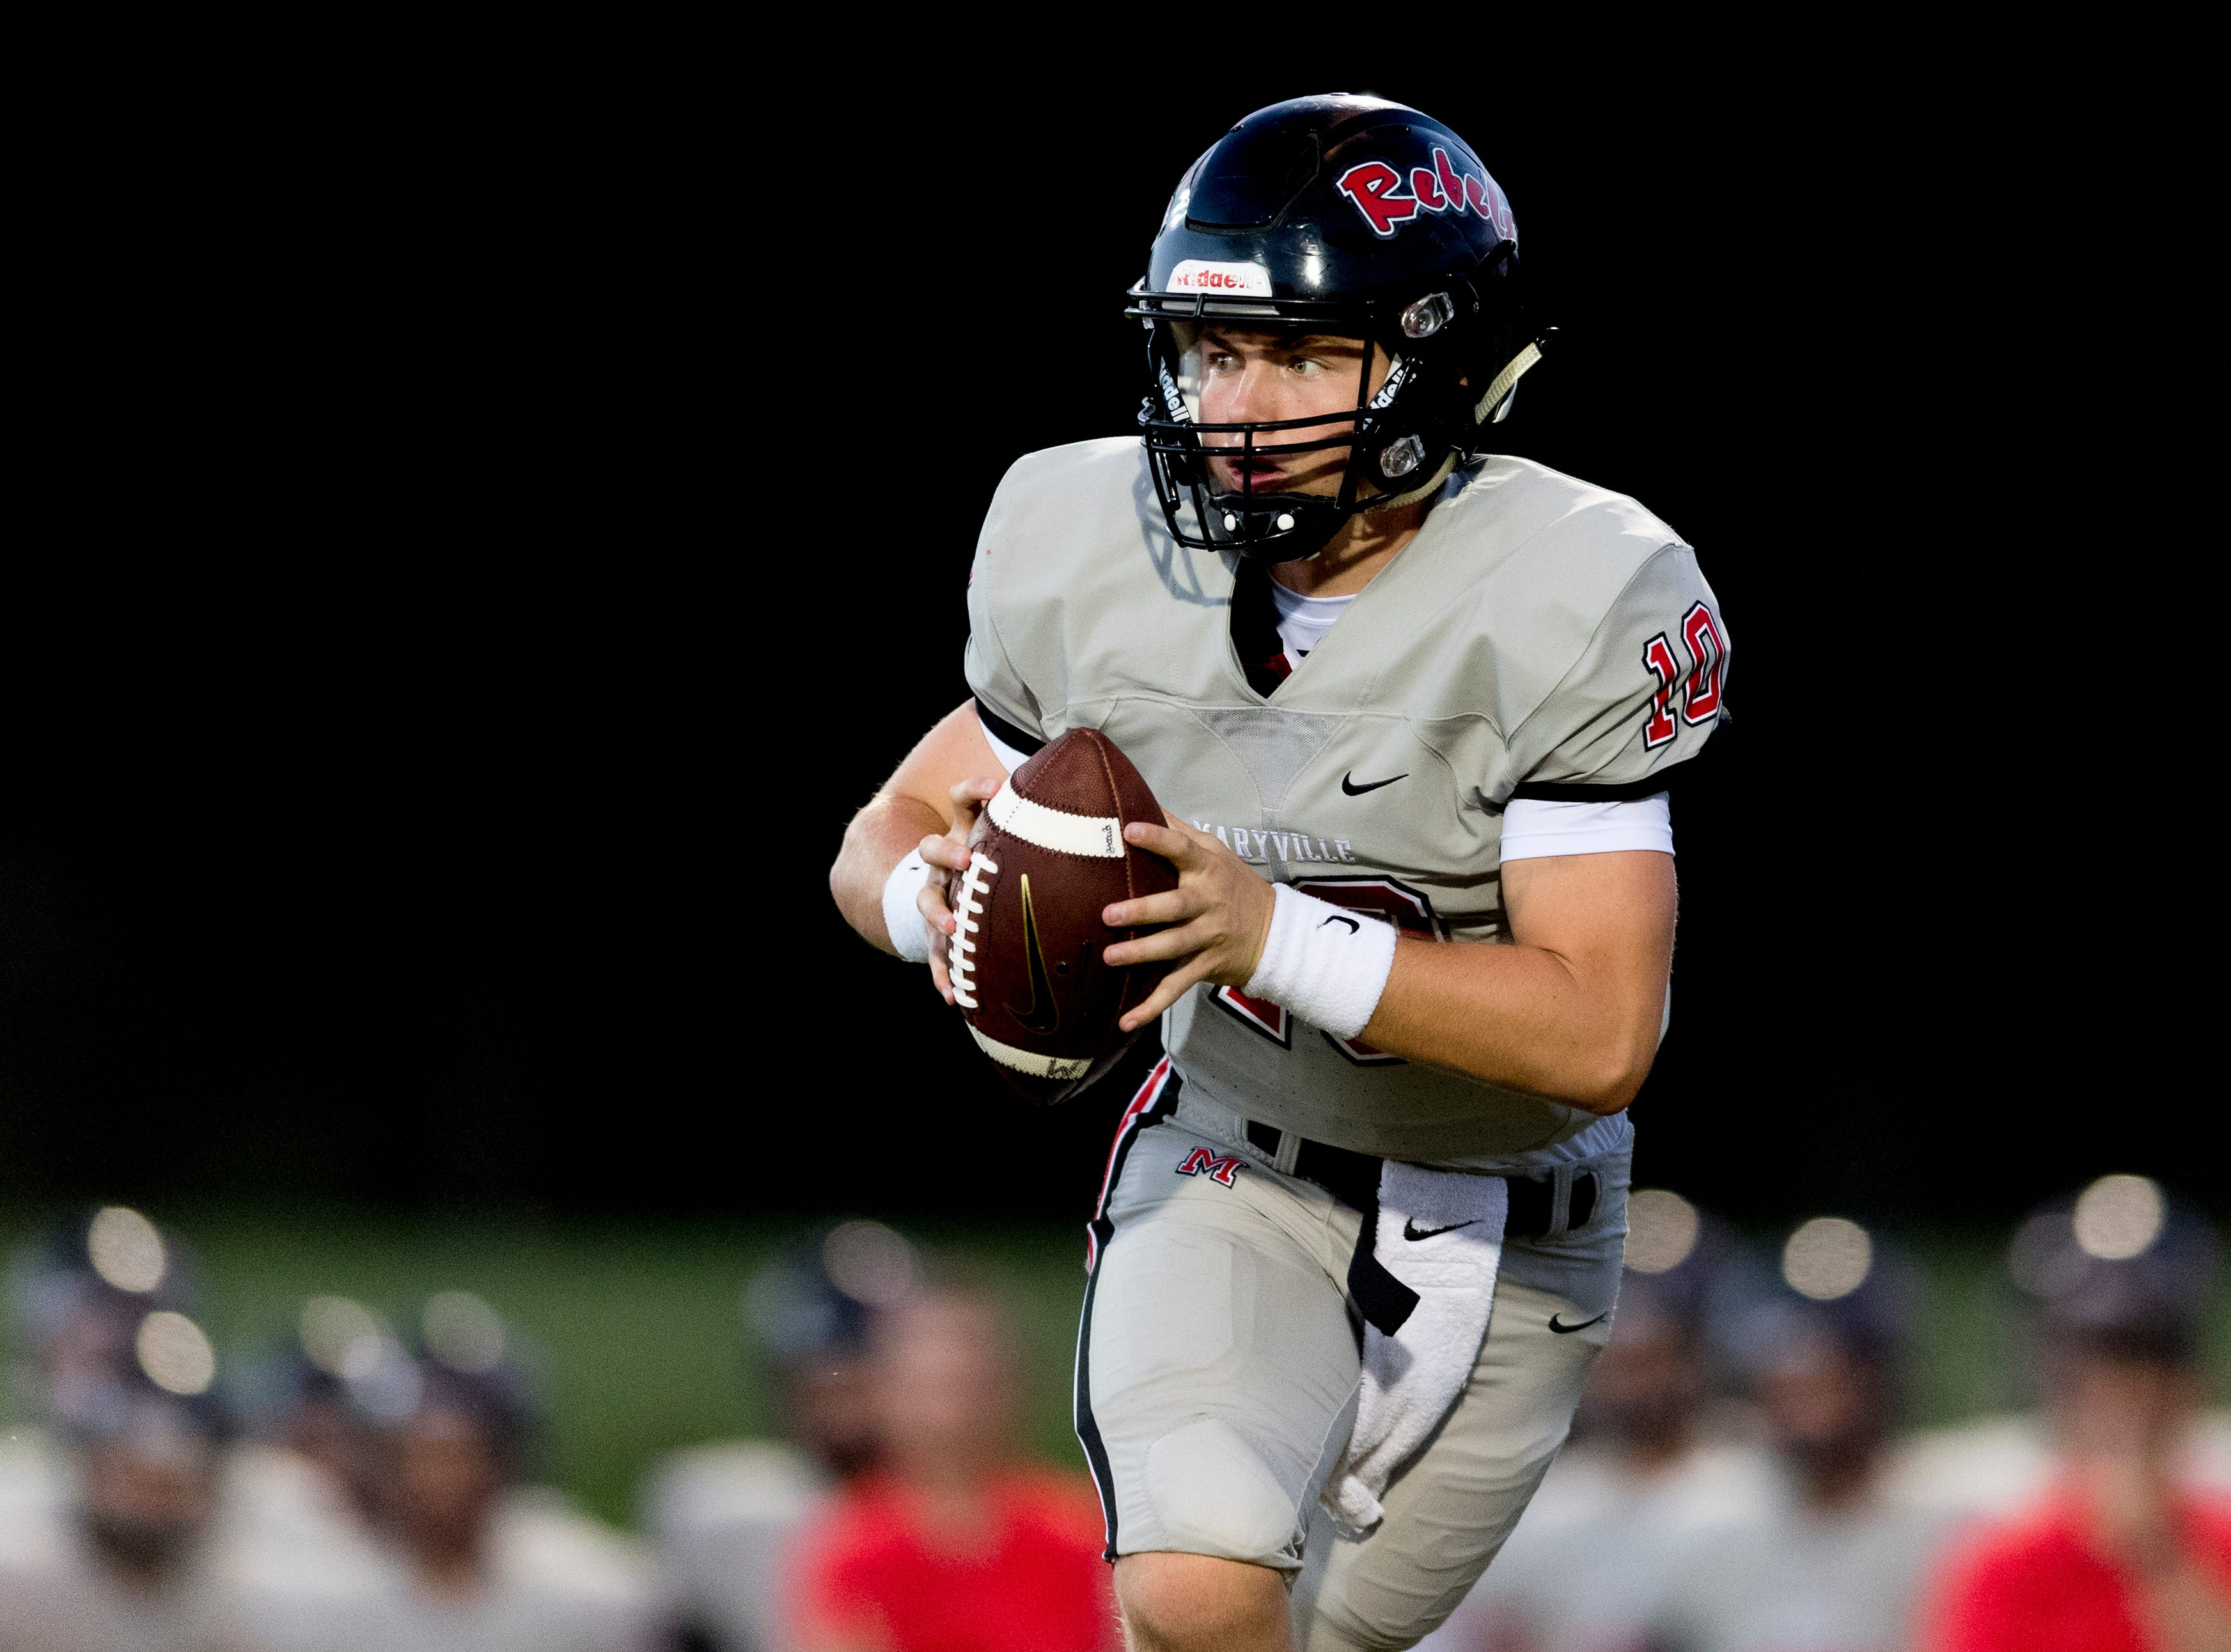 Maryville's Braden Carnes (10) looks to pass during the Blount County football jamboree at William Blount High School in Maryville, Tennessee on Friday, August 10, 2018.